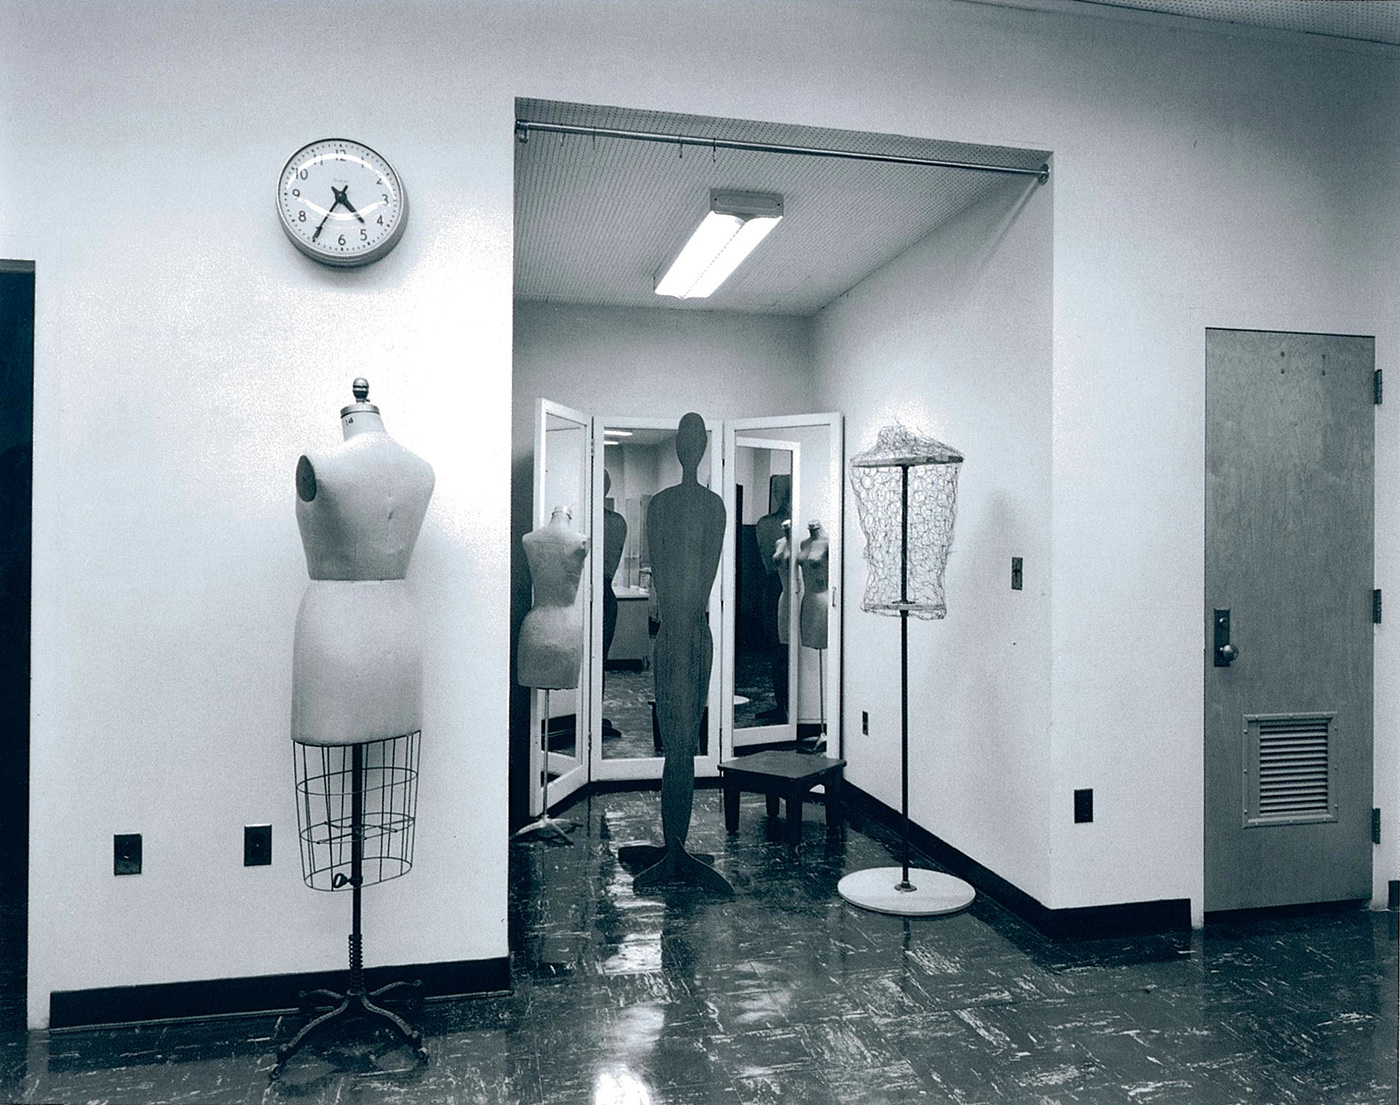 Untitled (Davis clock and seamstress dummy), 1980-1989